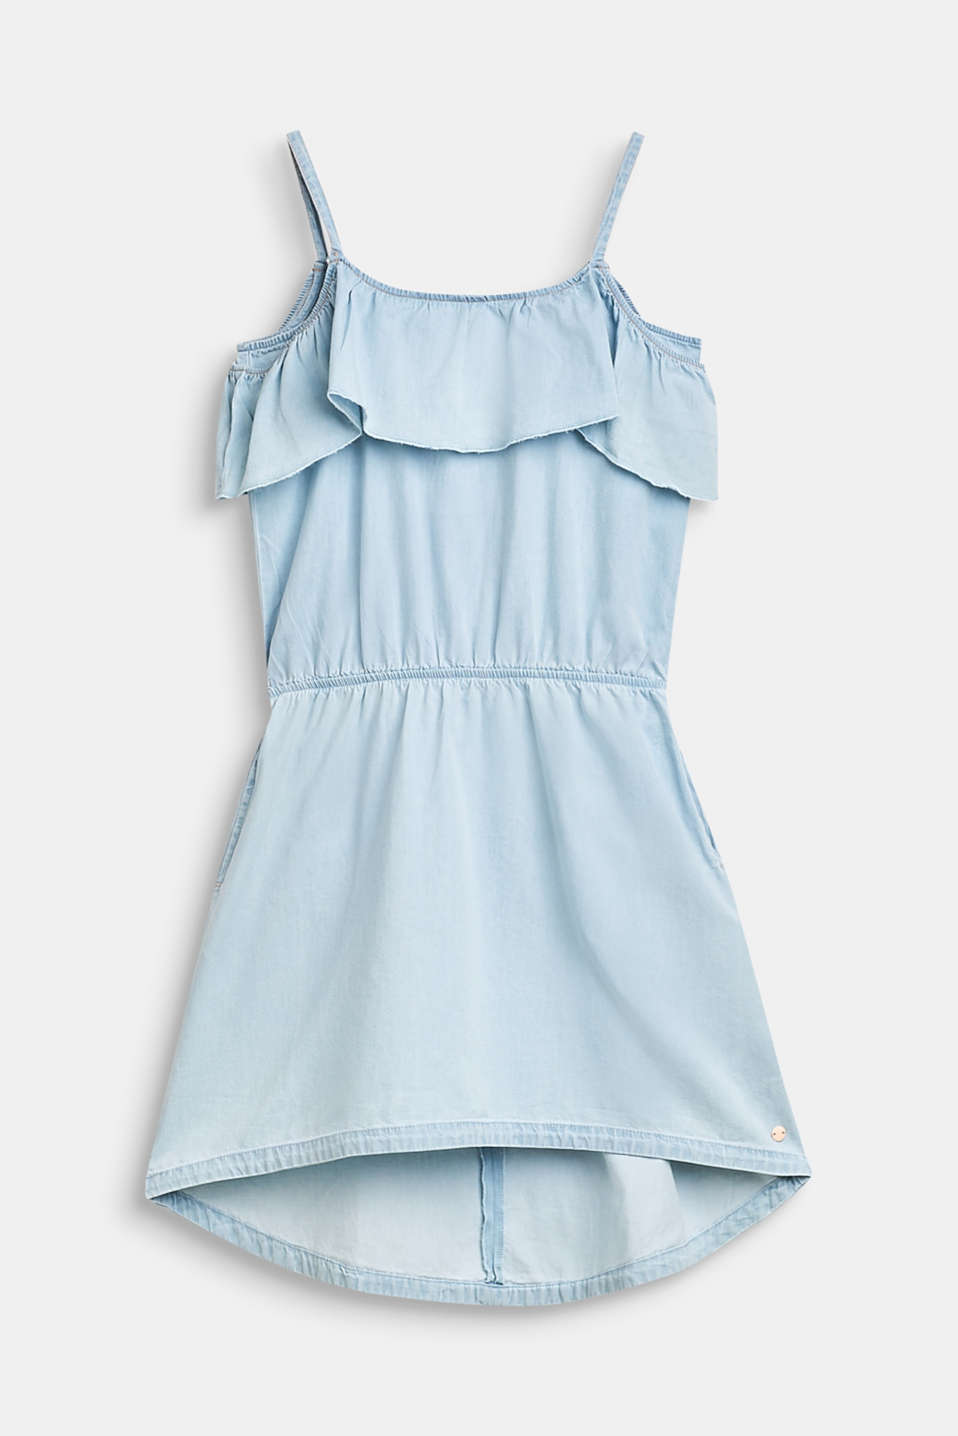 Esprit - Off-the-shoulder denim dress in 100% cotton